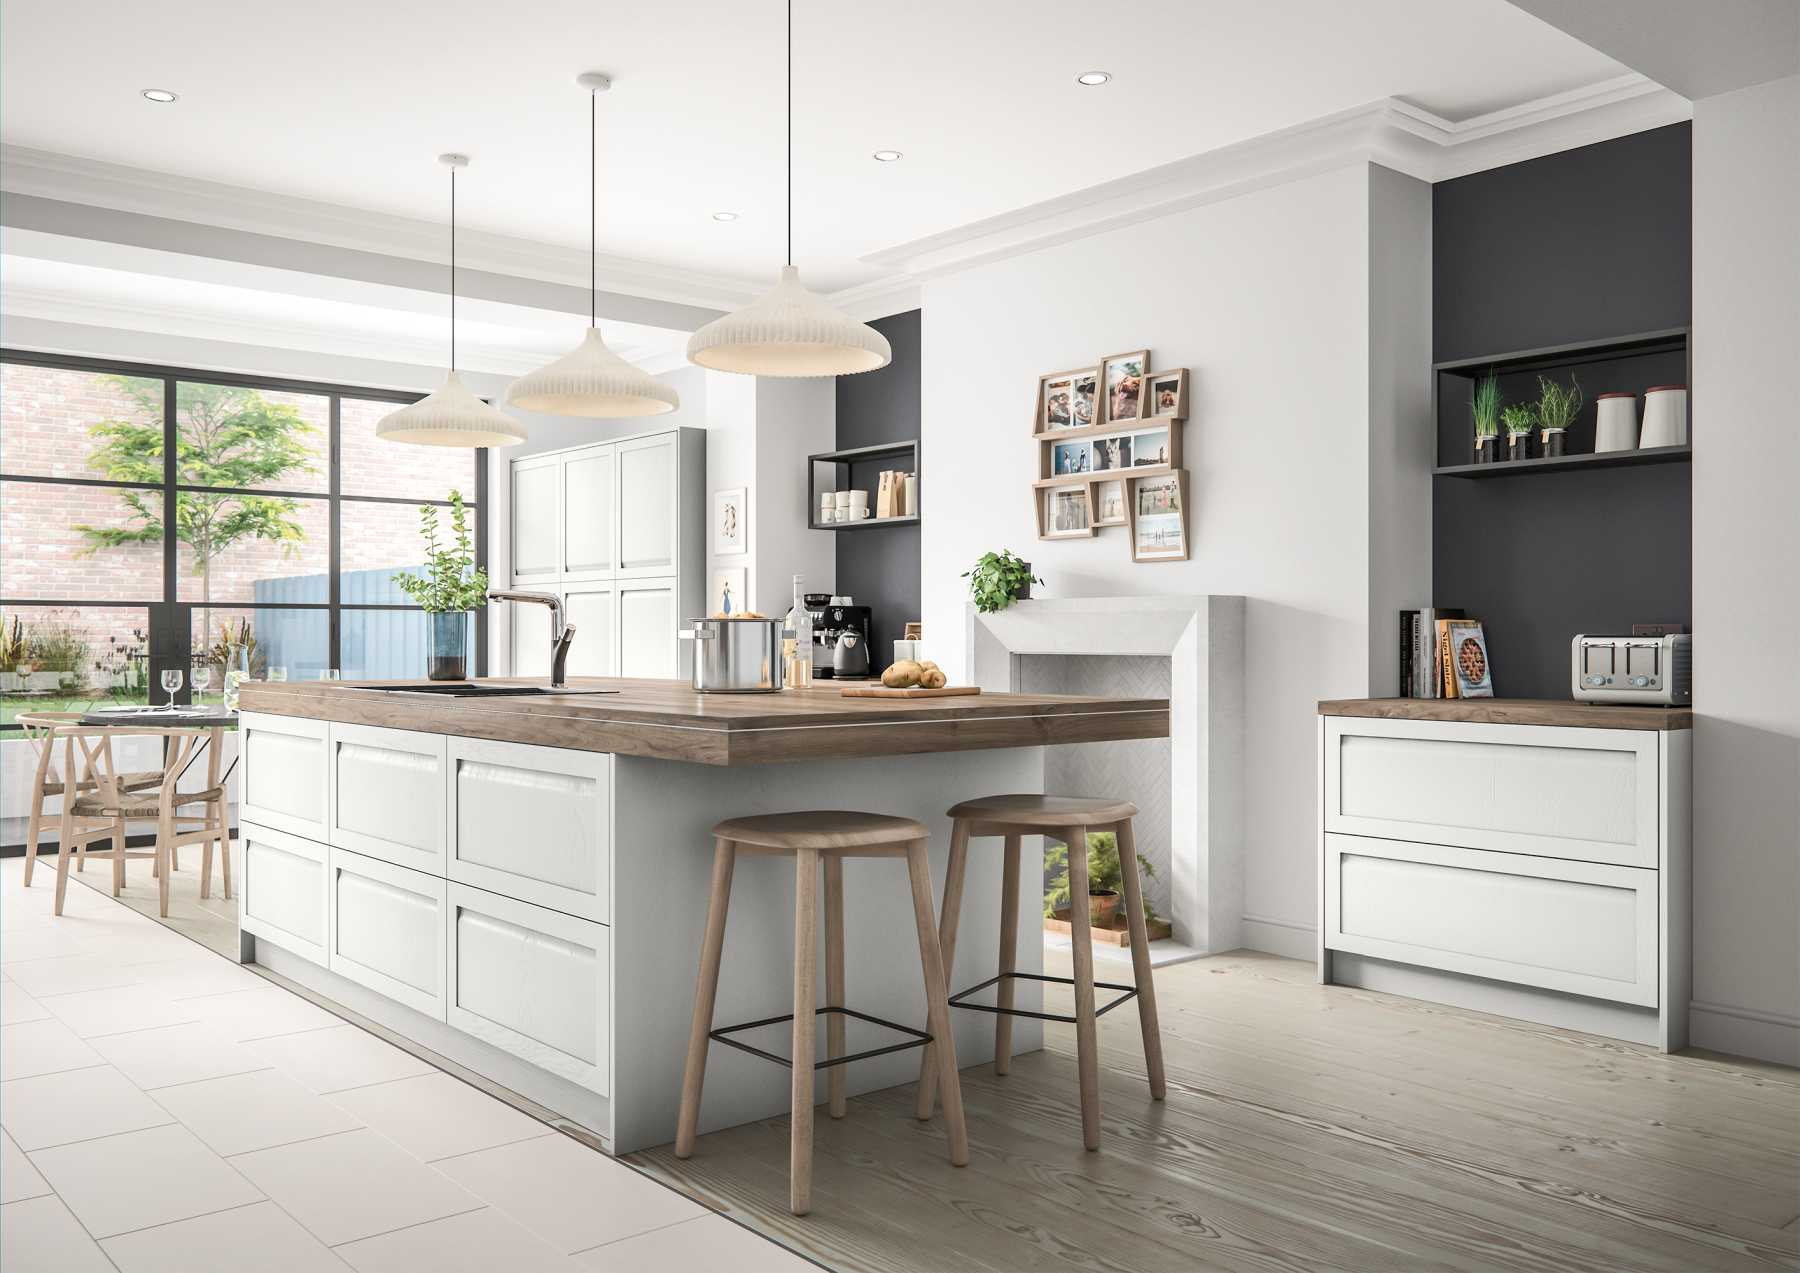 Contemporary handleless shaker style kitchen island painted matte light grey